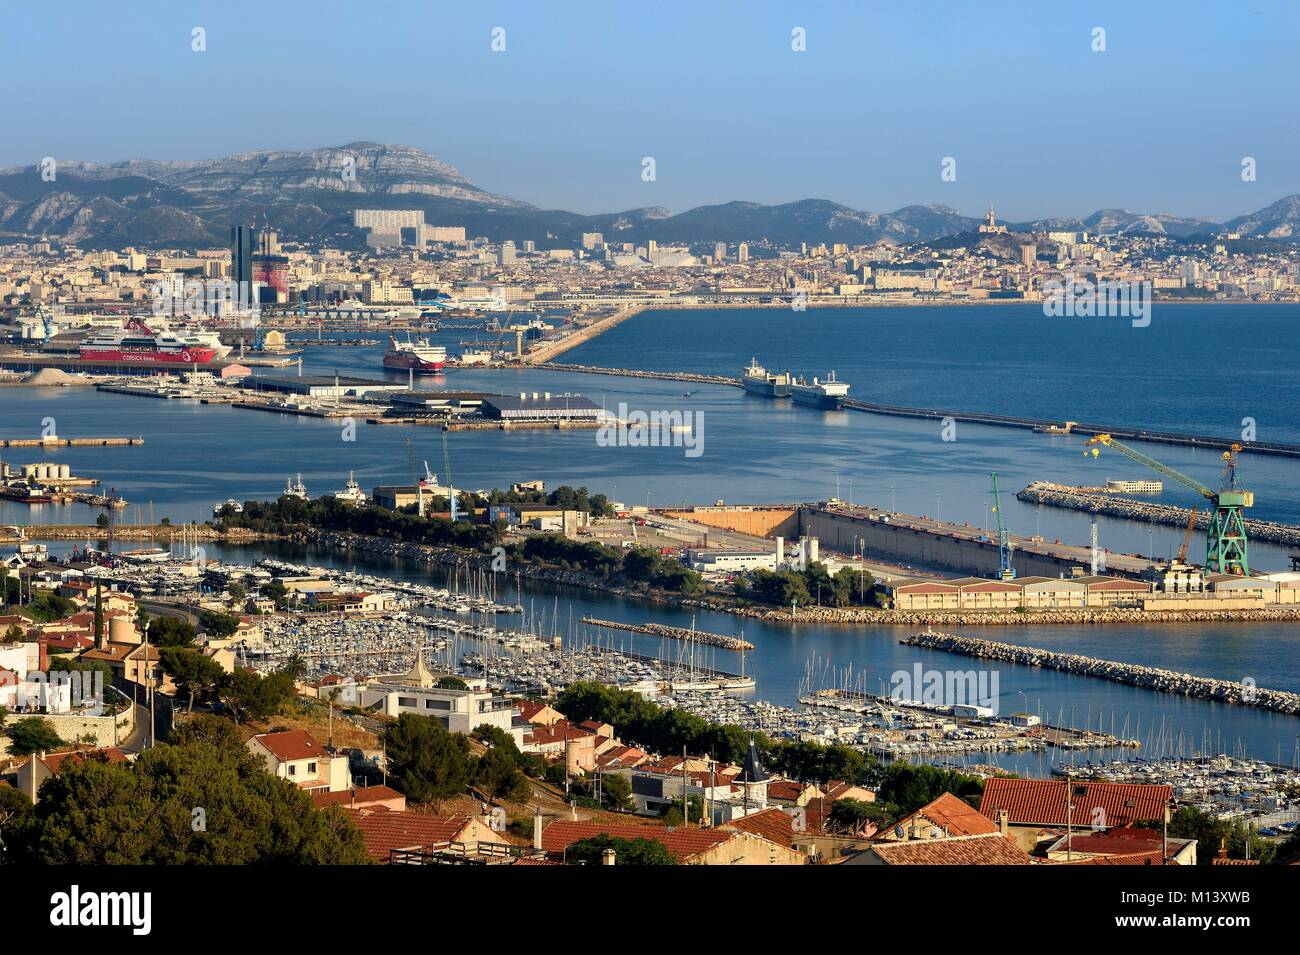 South east of france stock photos south east of france - Port maritime marseille ...